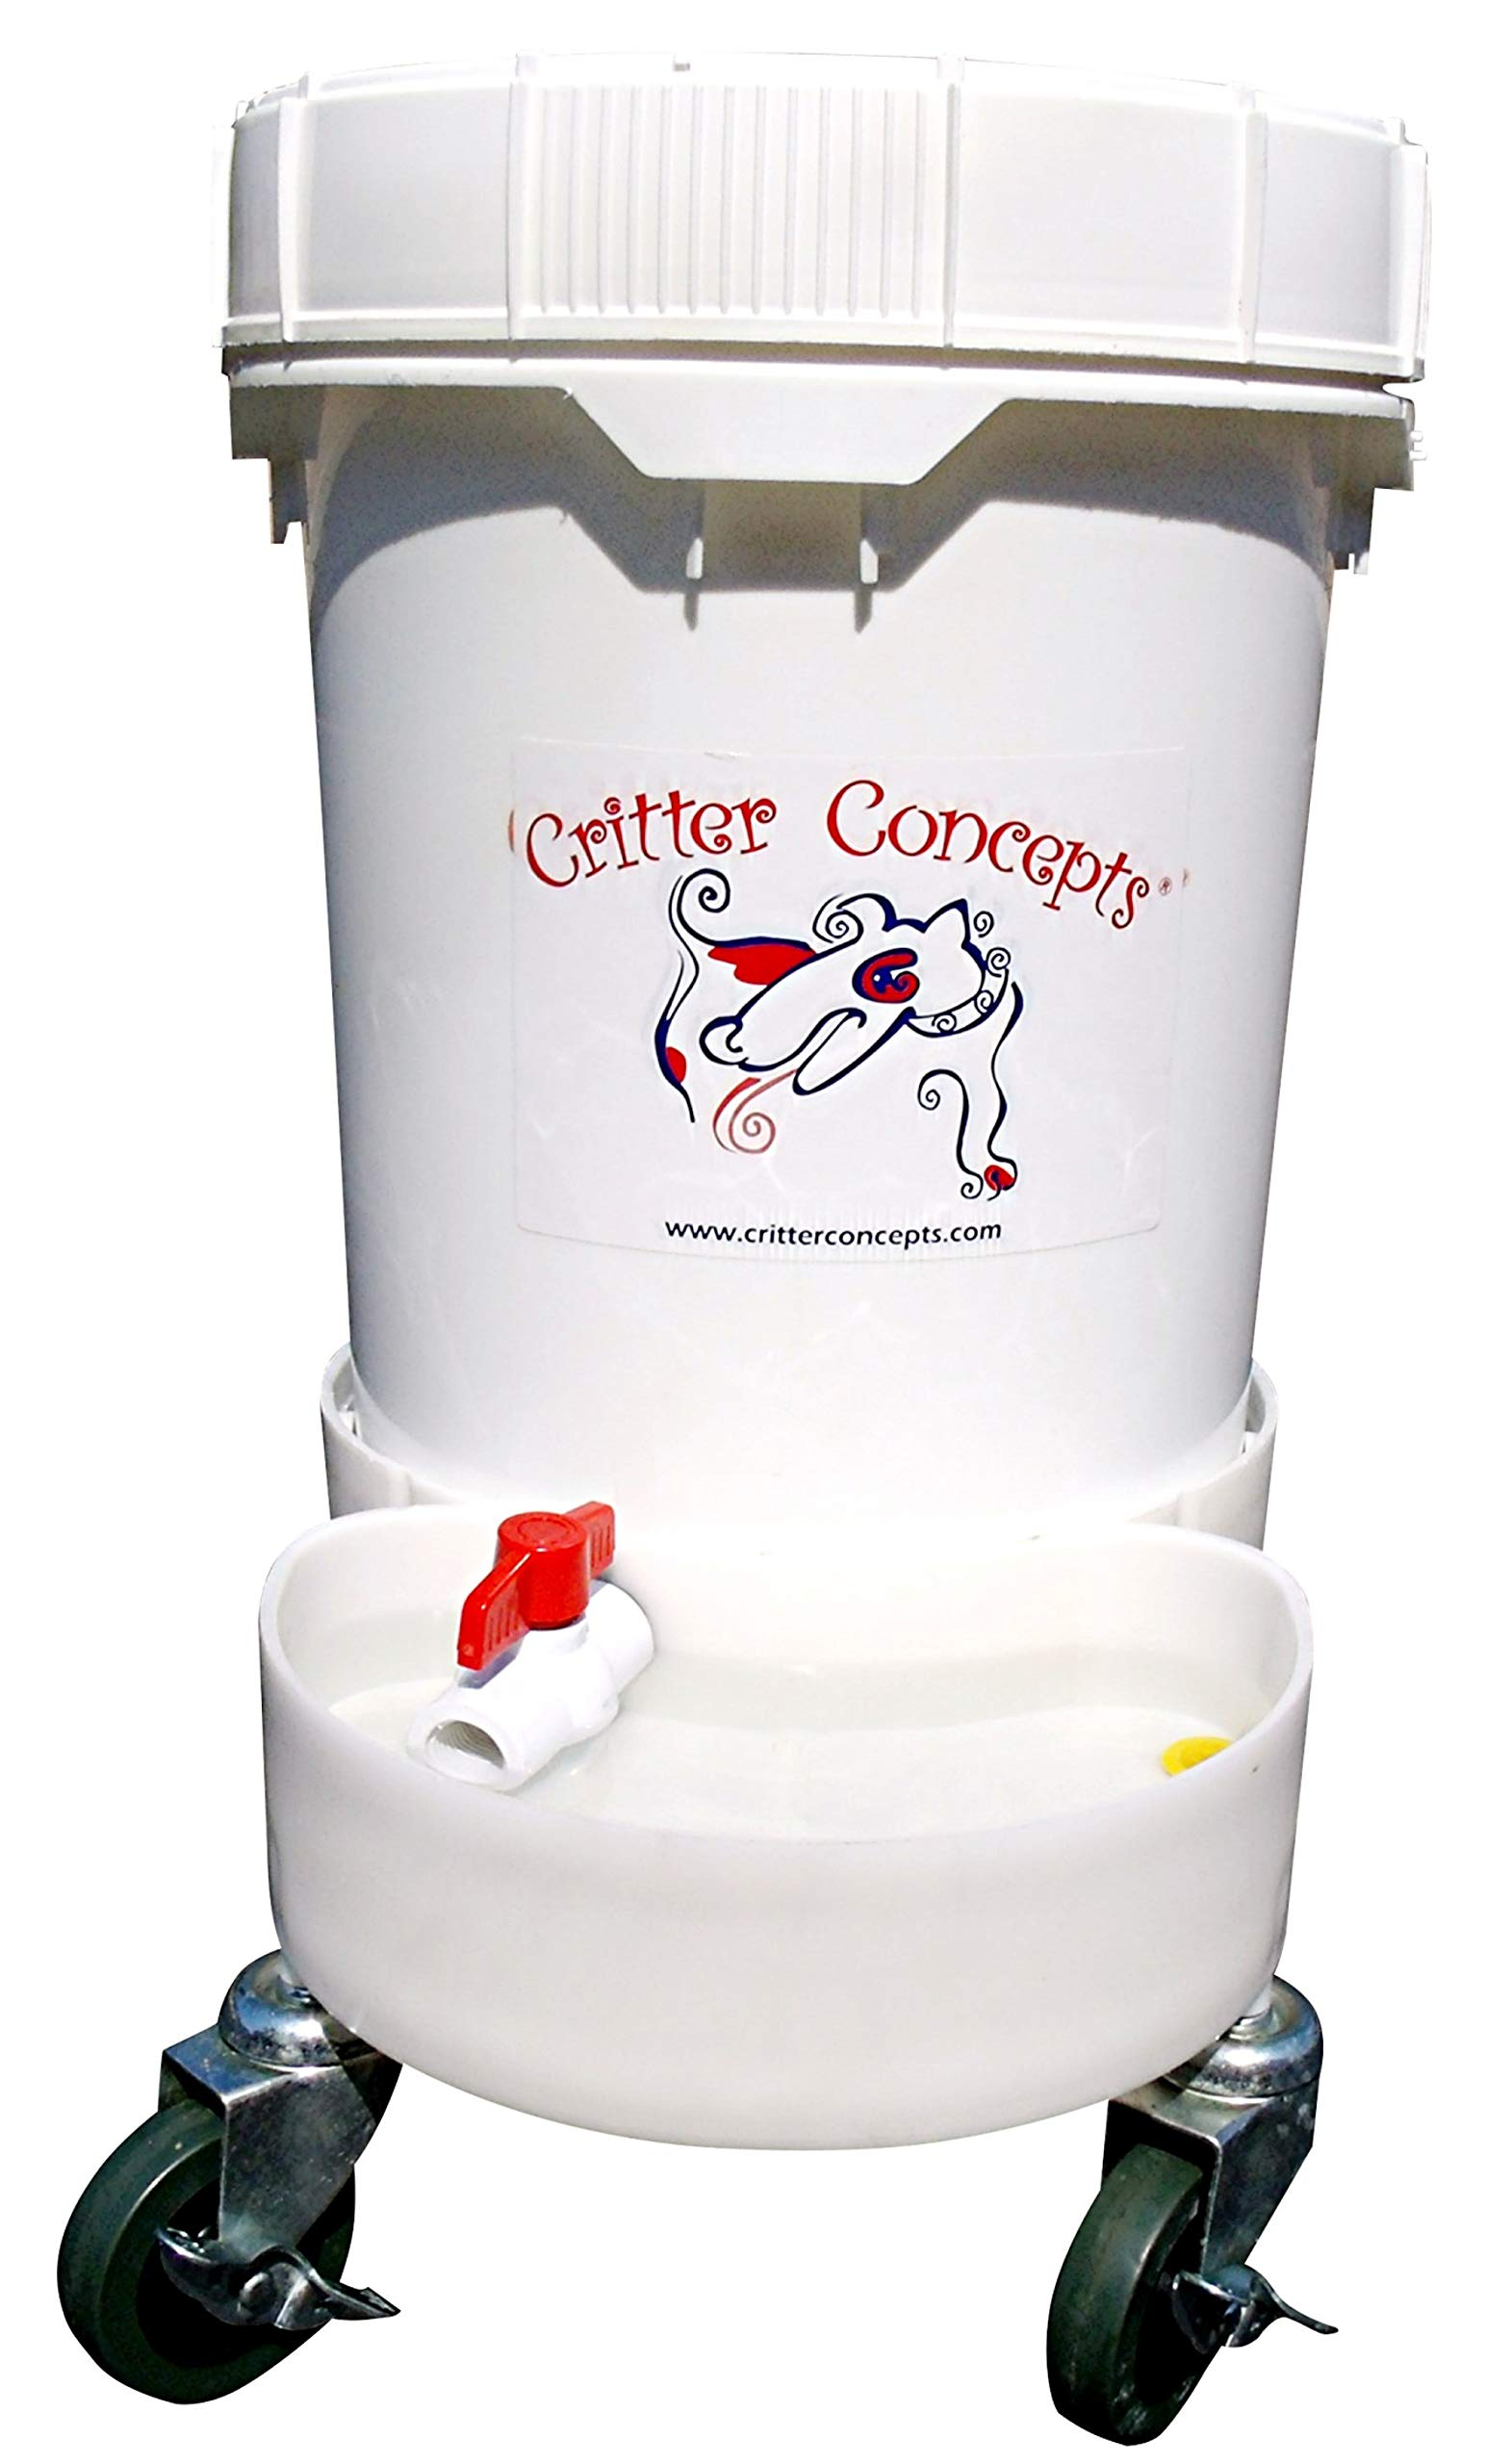 Critter Concepts Dog Water Dispenser – All Day Automatic Waterer for Thirsty Dogs – Large Rolling Pet Fountain Dog Water Bowl, Anti-Fall Indoor/Outdoor Self-Dispensing Gravity Design, Easy to Clean